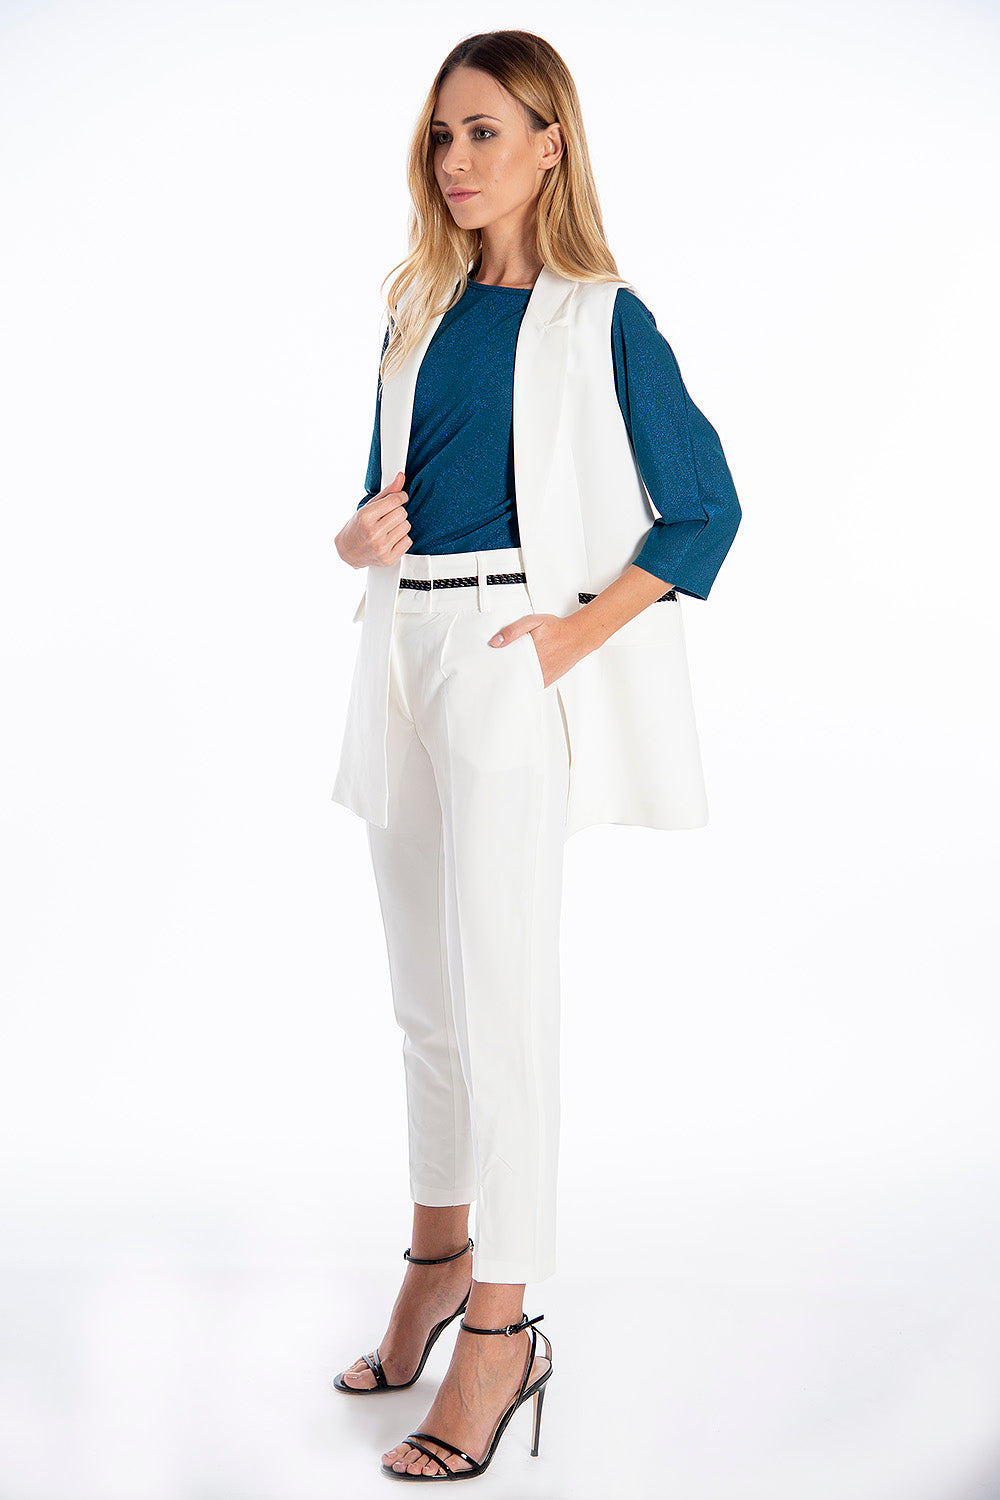 NúNu suited co-ord trousers with rope belt detail